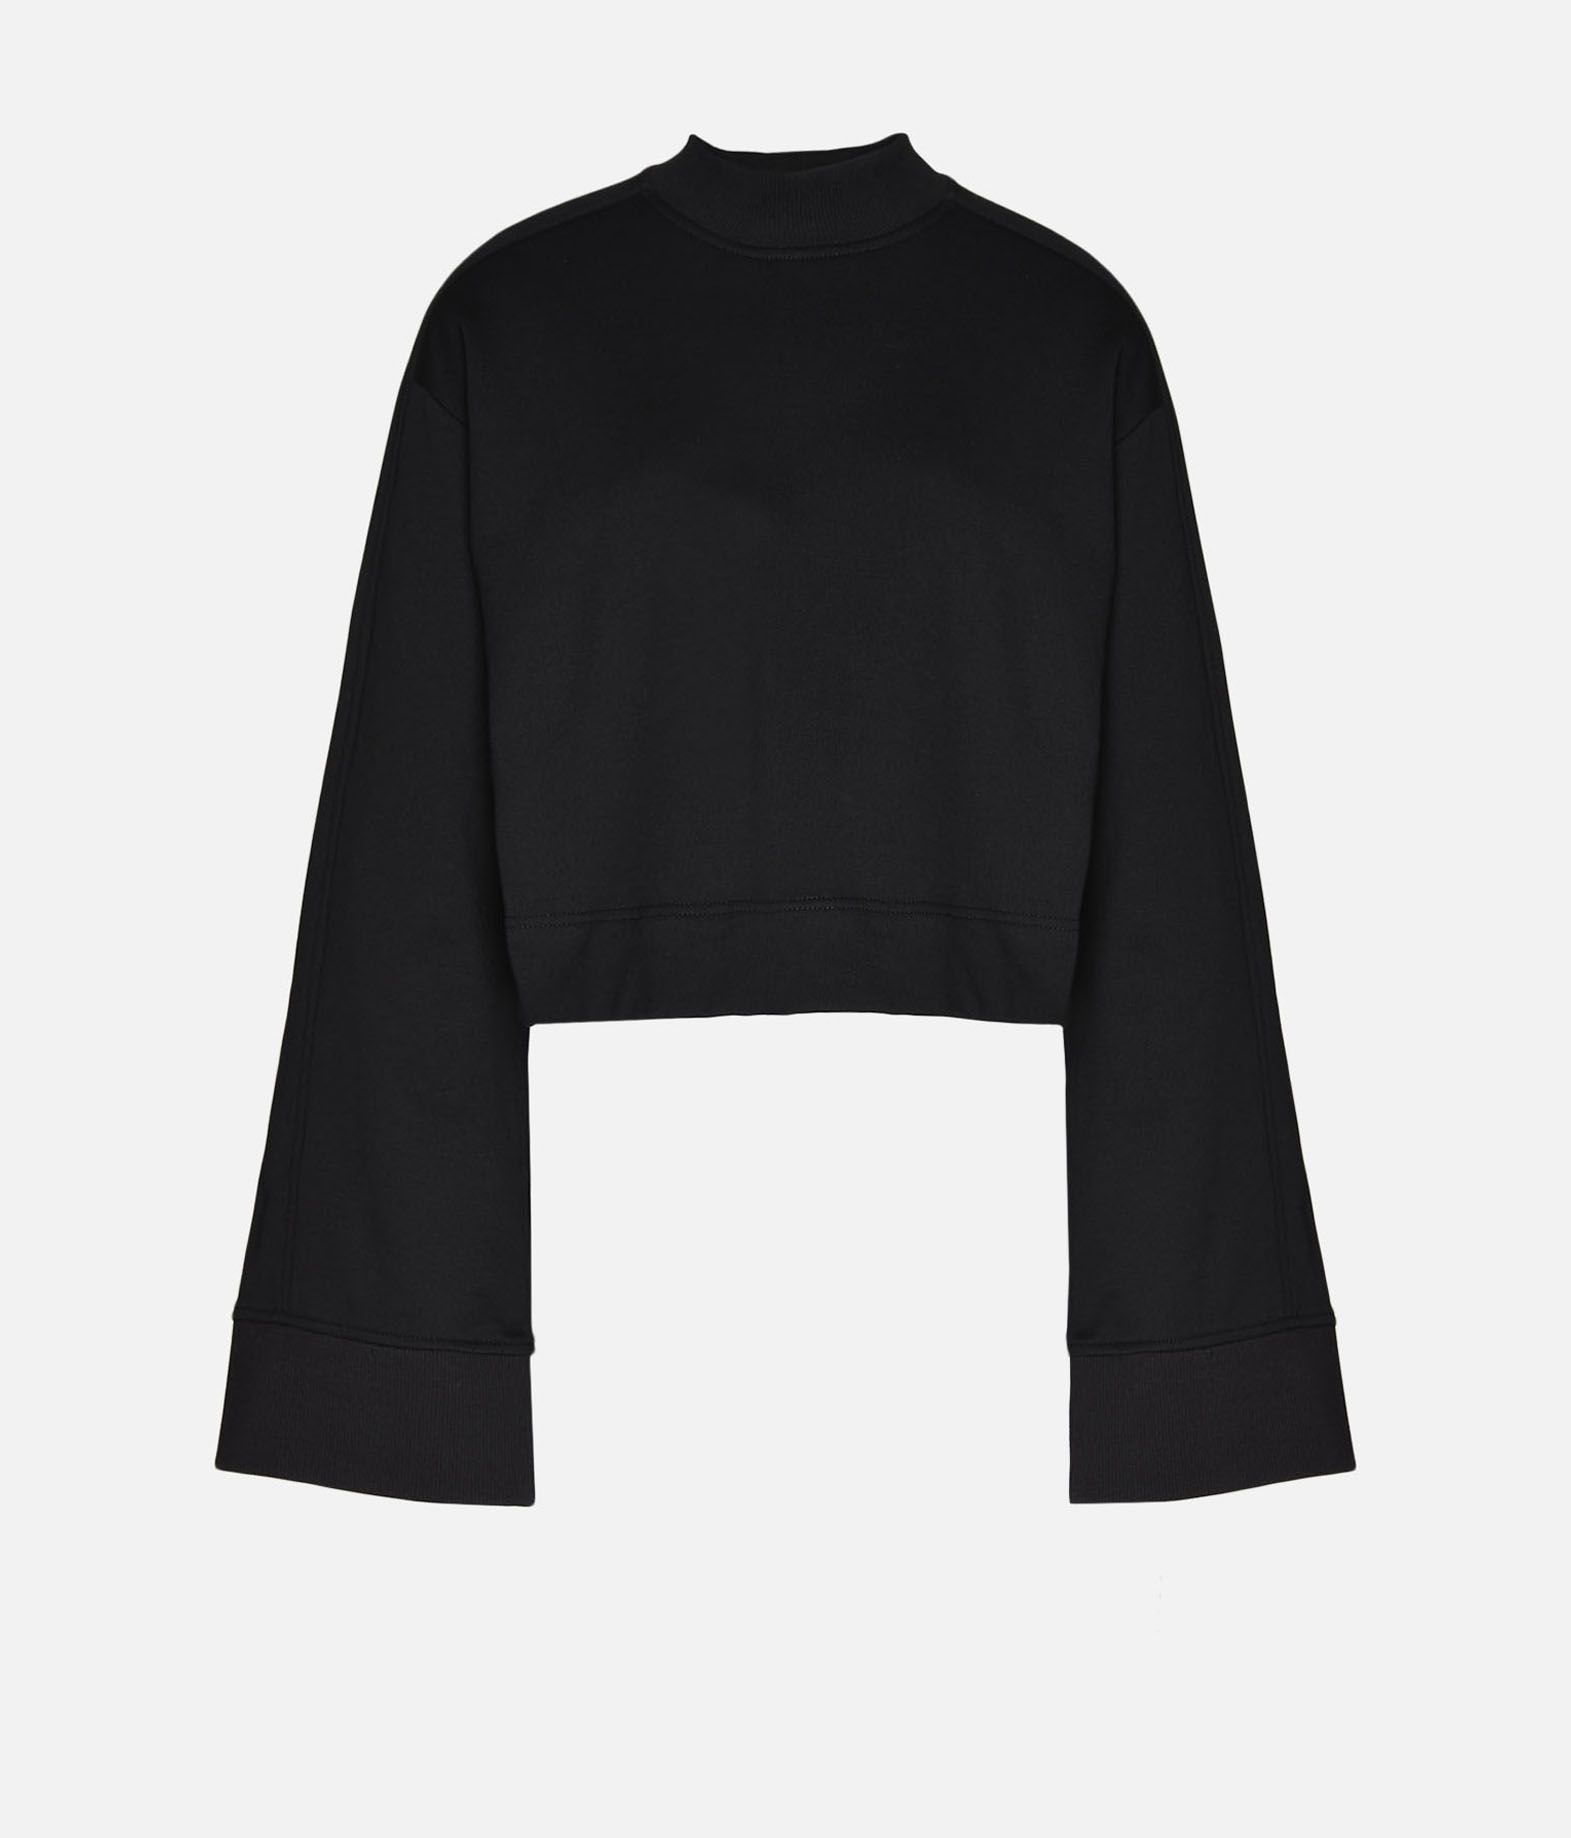 Y-3 Y-3 Stacked Logo Sweater Sweatshirt Woman f